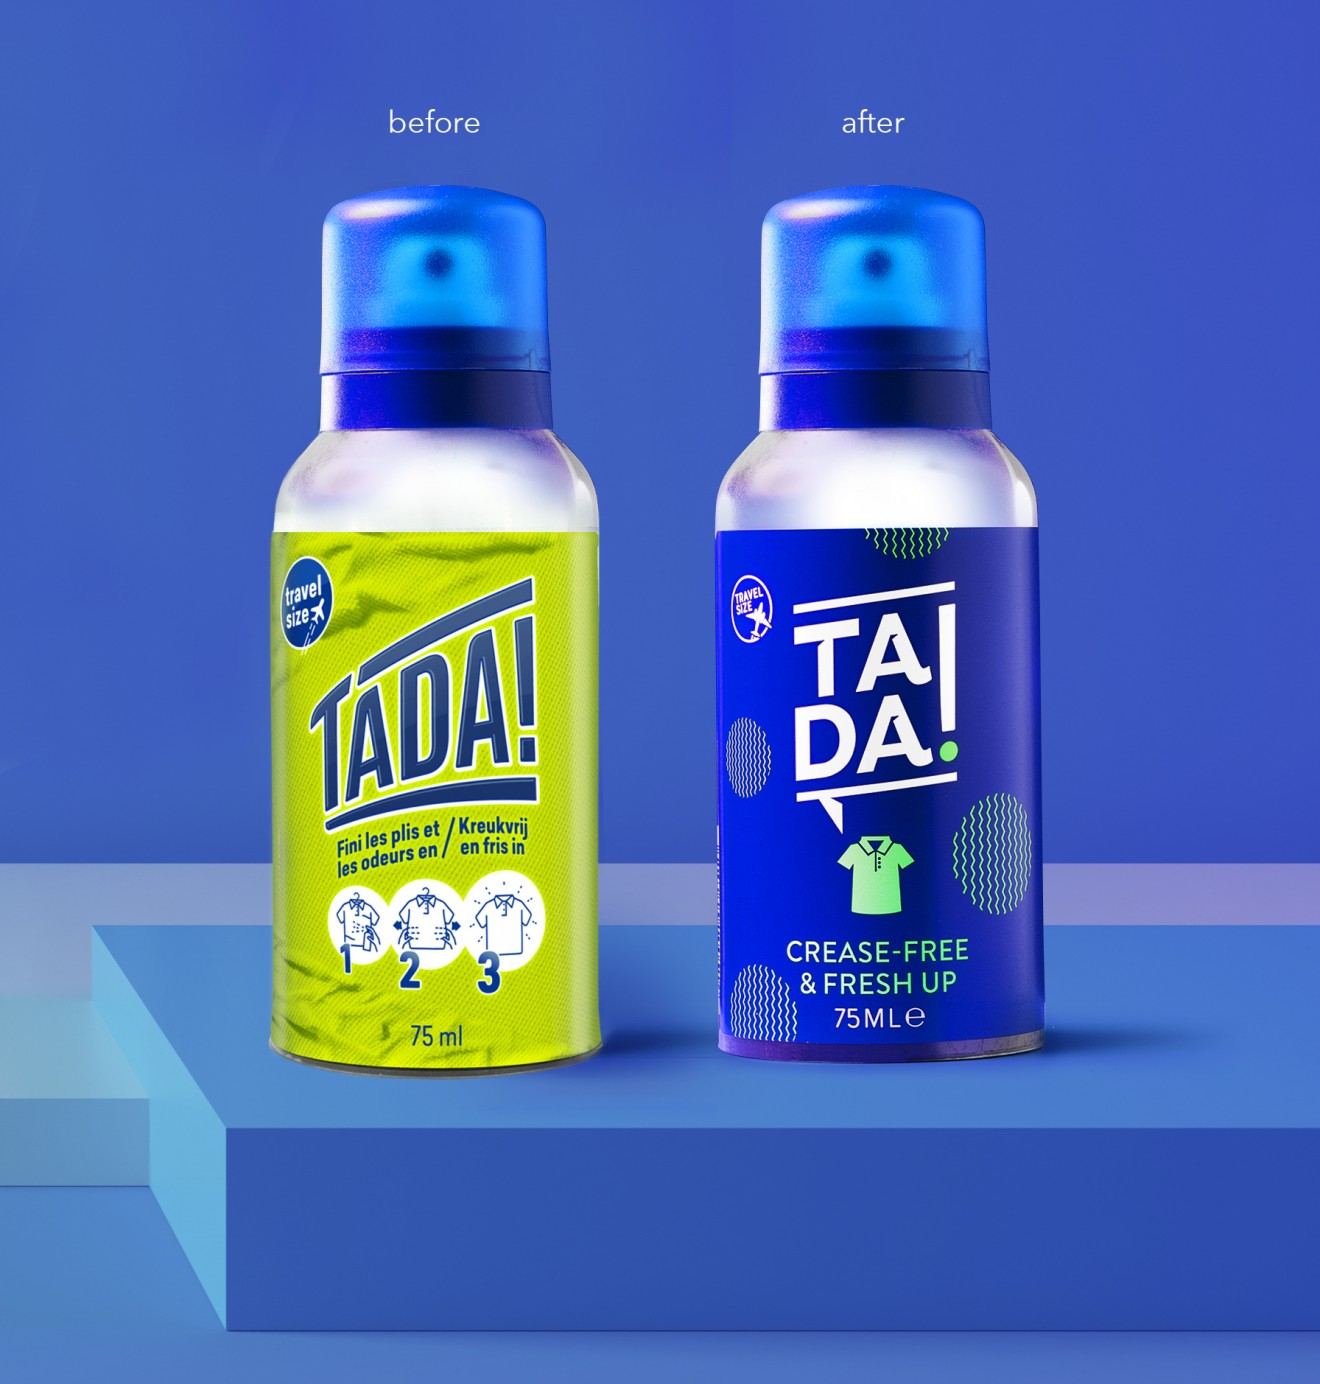 Quatre Mains package design - before, after, tadaa, crease wrinkle free